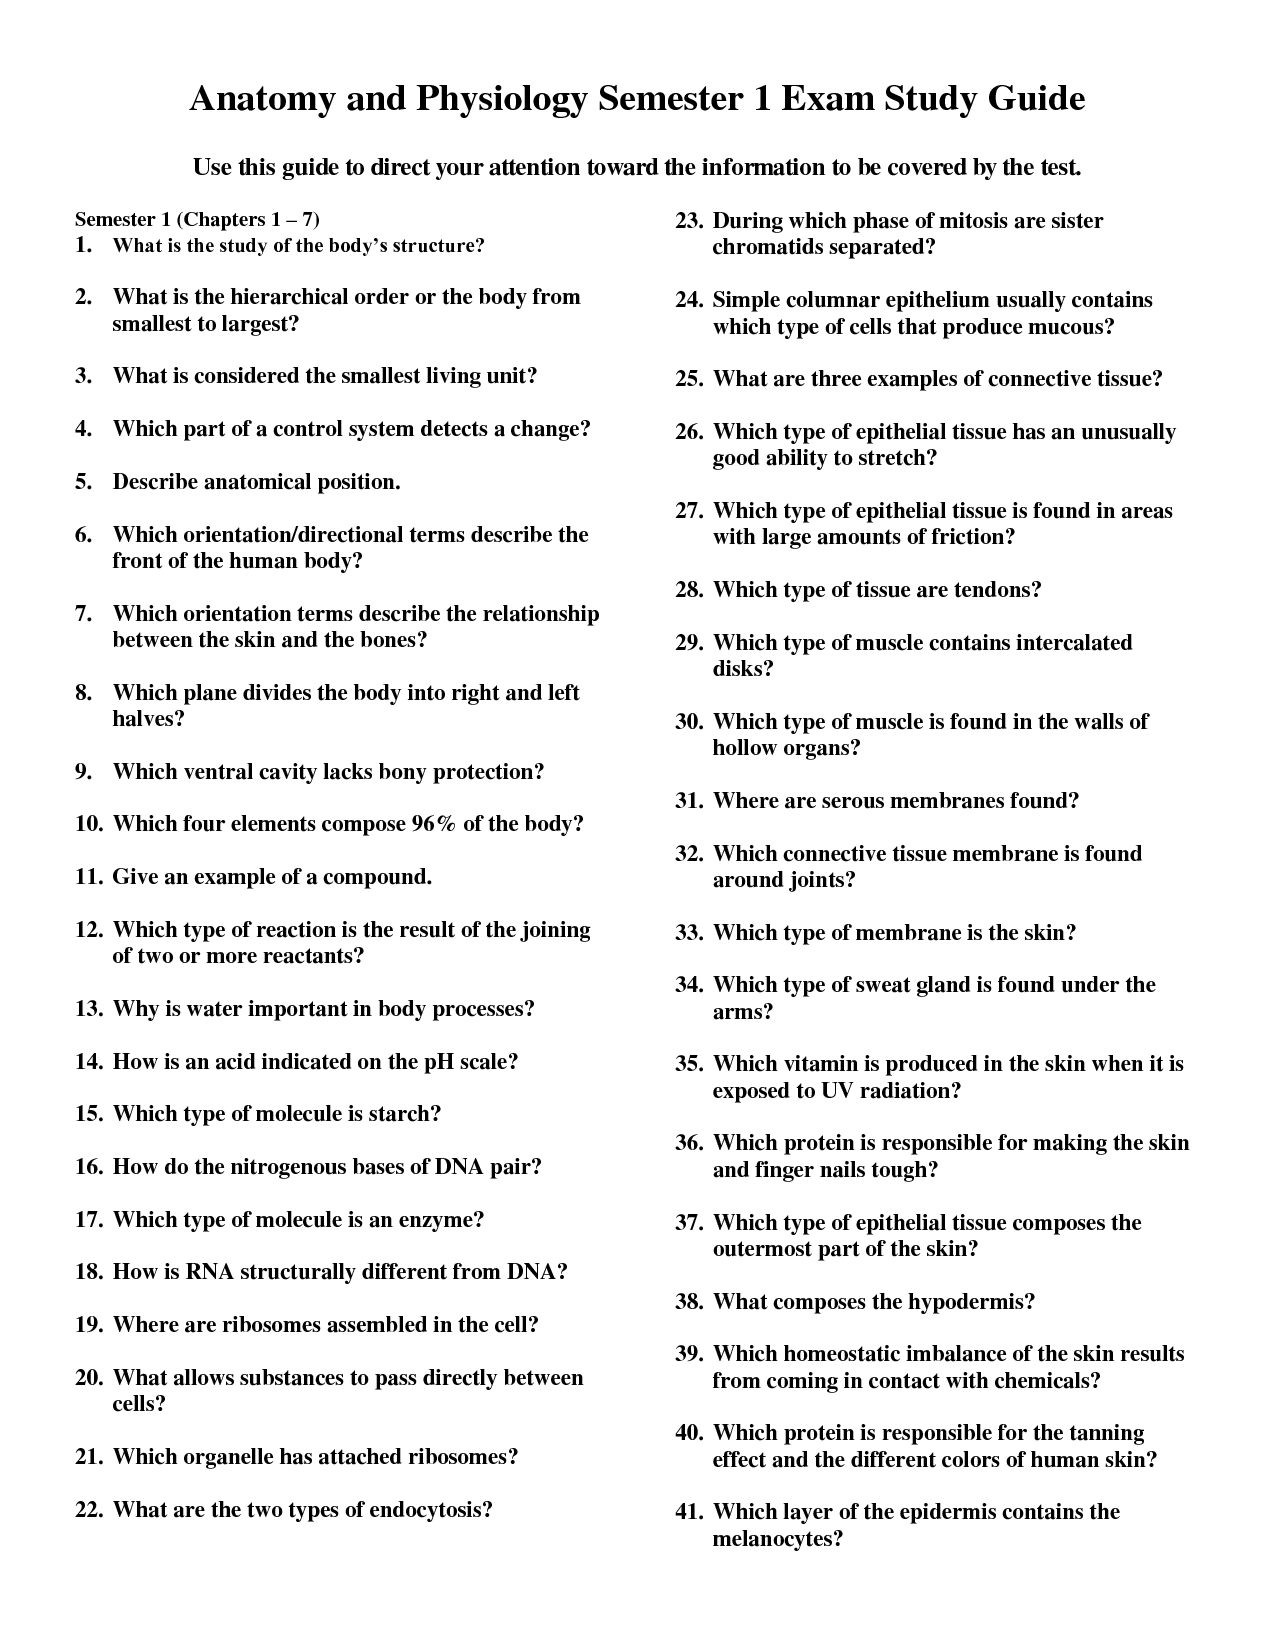 Anatomy and Physiology Study Guide | Anatomy and Physiology Semester ...